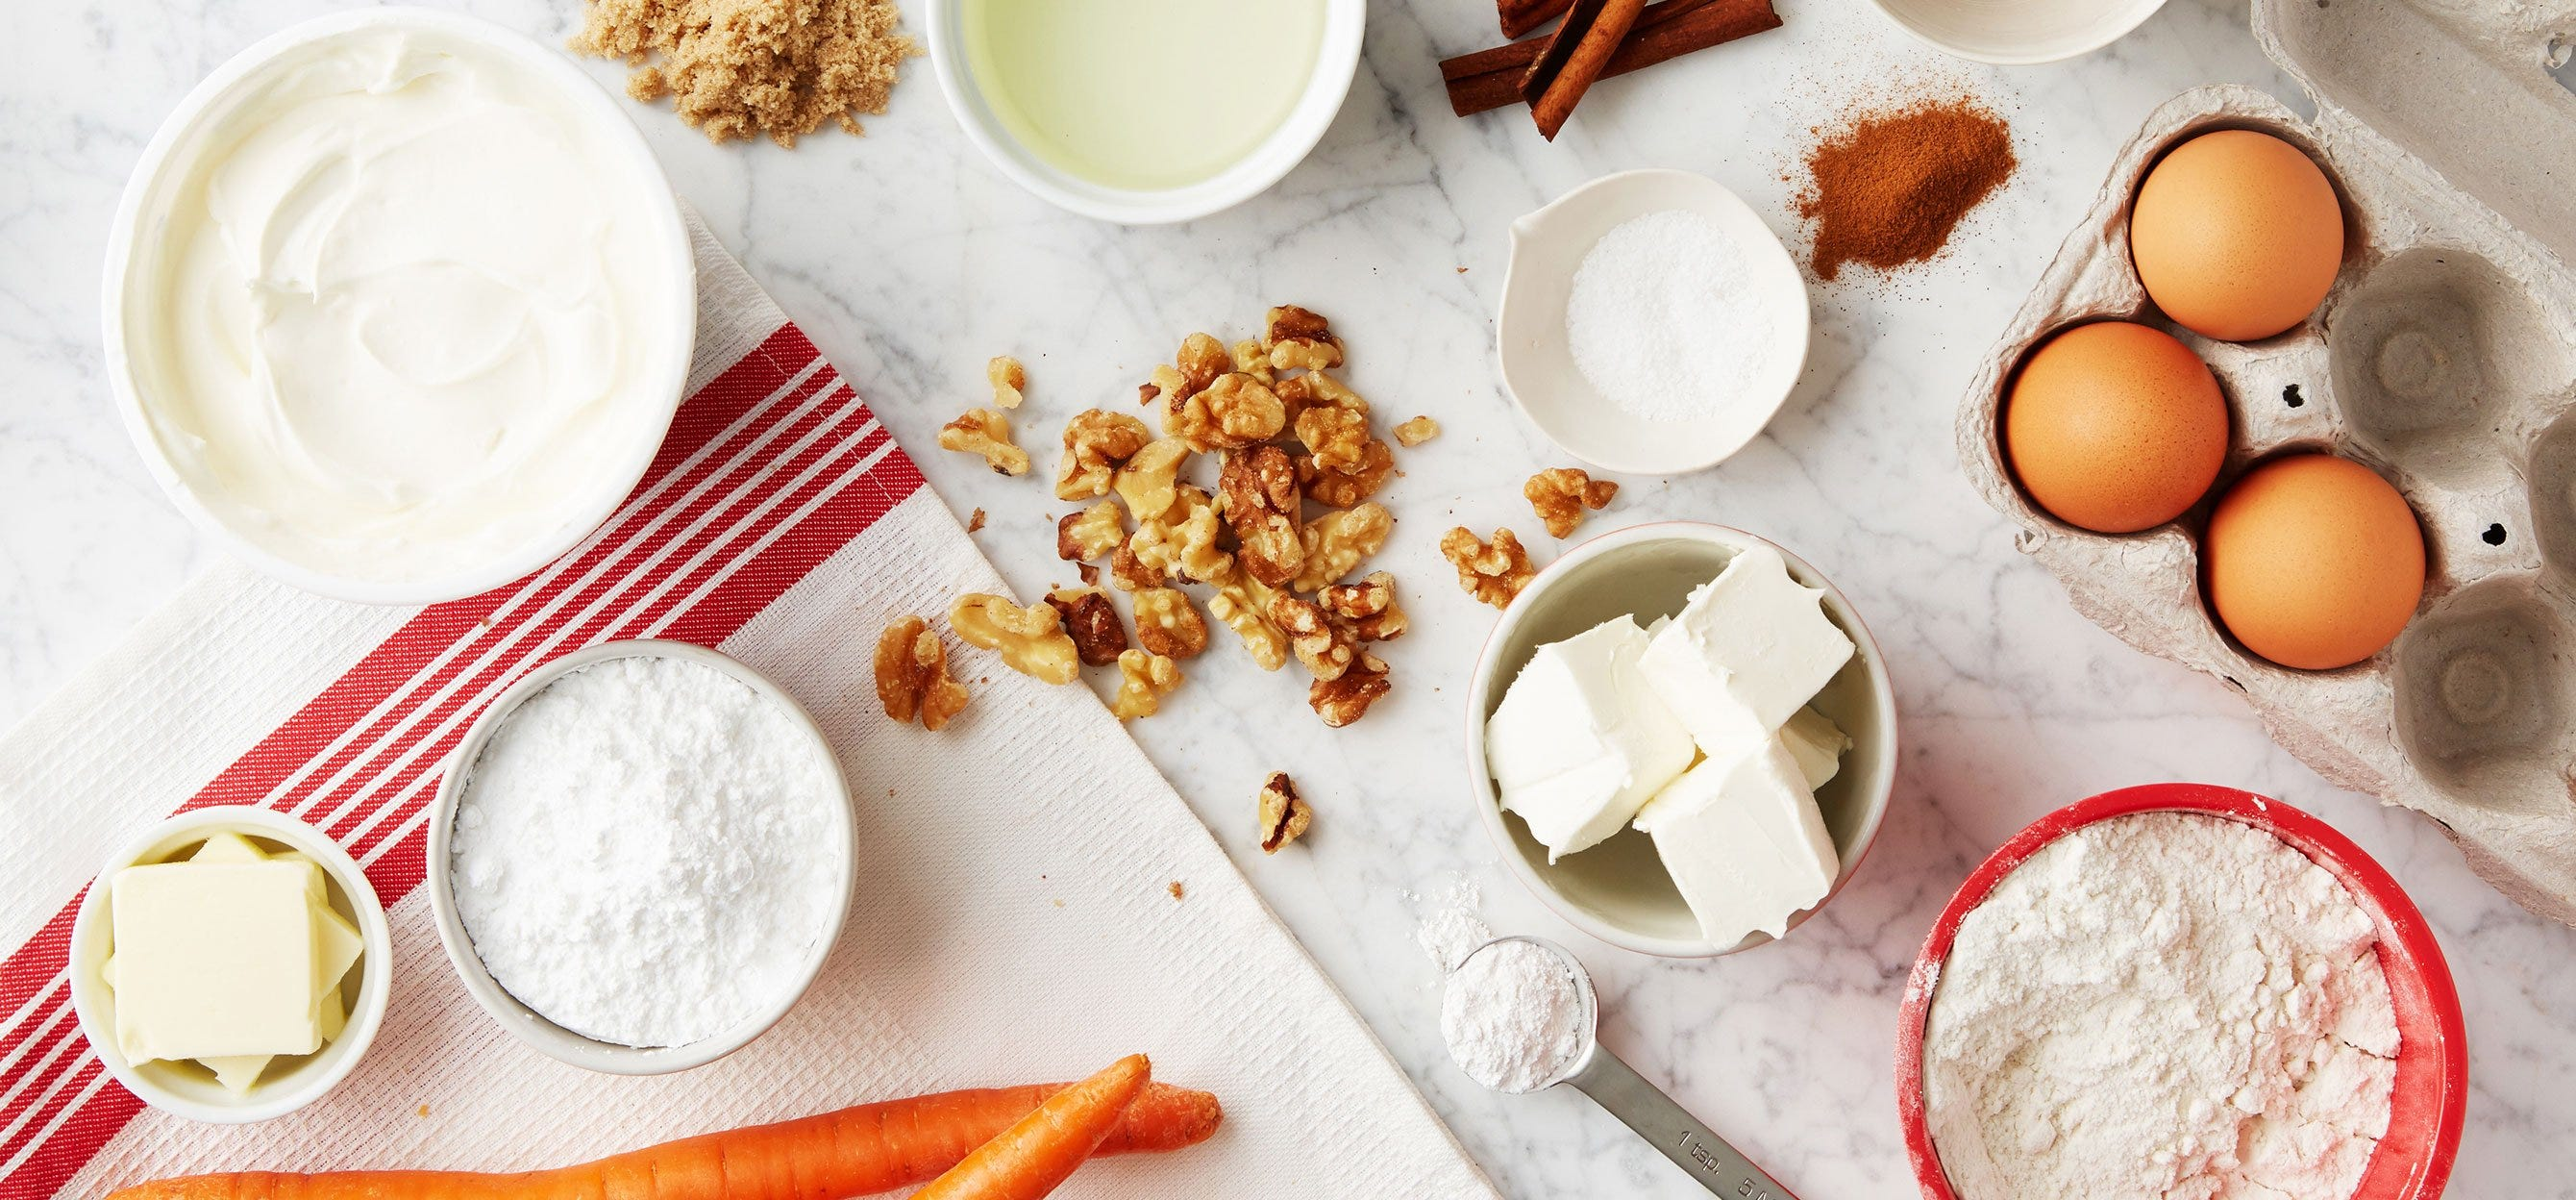 CARROT CAKE WITH WALNUTS AND CREAM CHEESE FROSTING